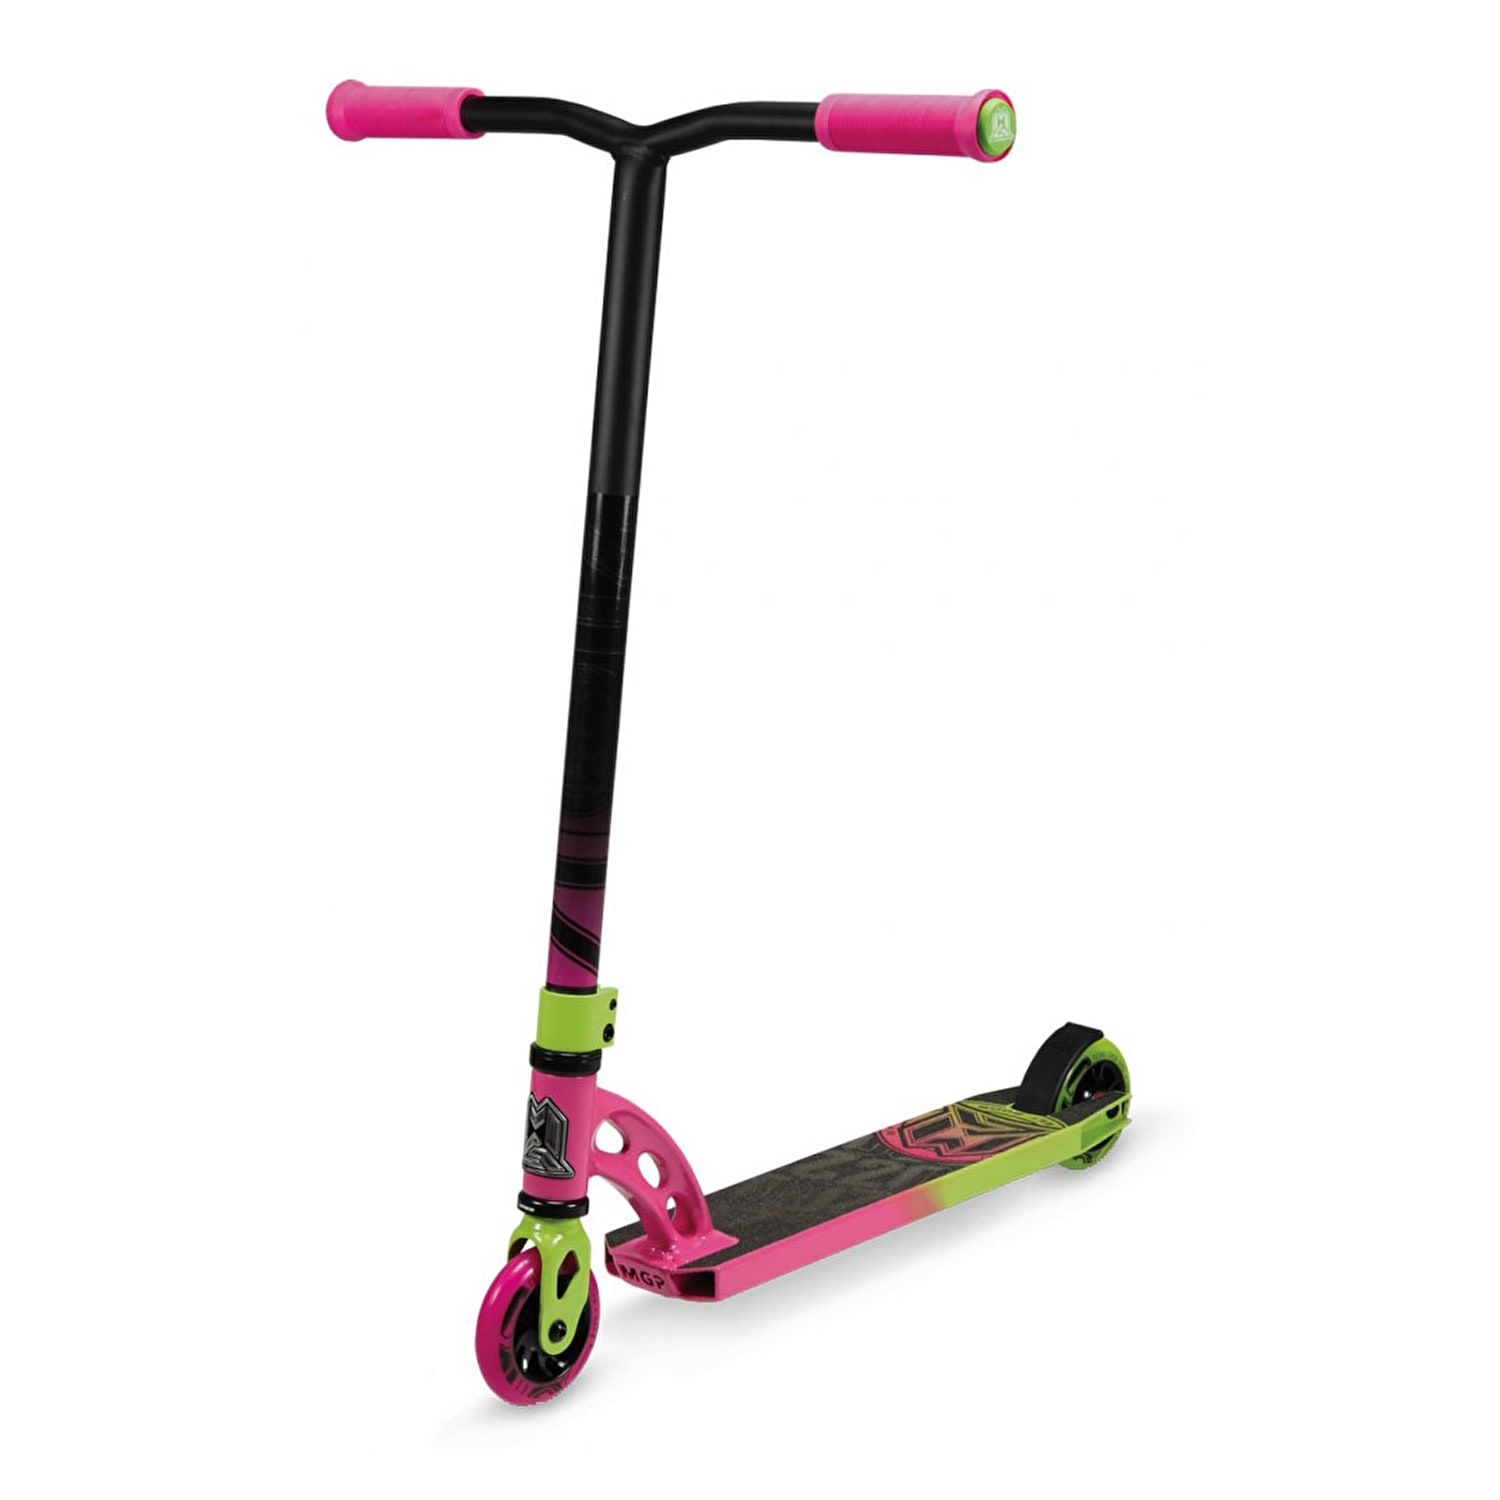 mgp vx6 pro complete stunt scooter strong lightweight. Black Bedroom Furniture Sets. Home Design Ideas